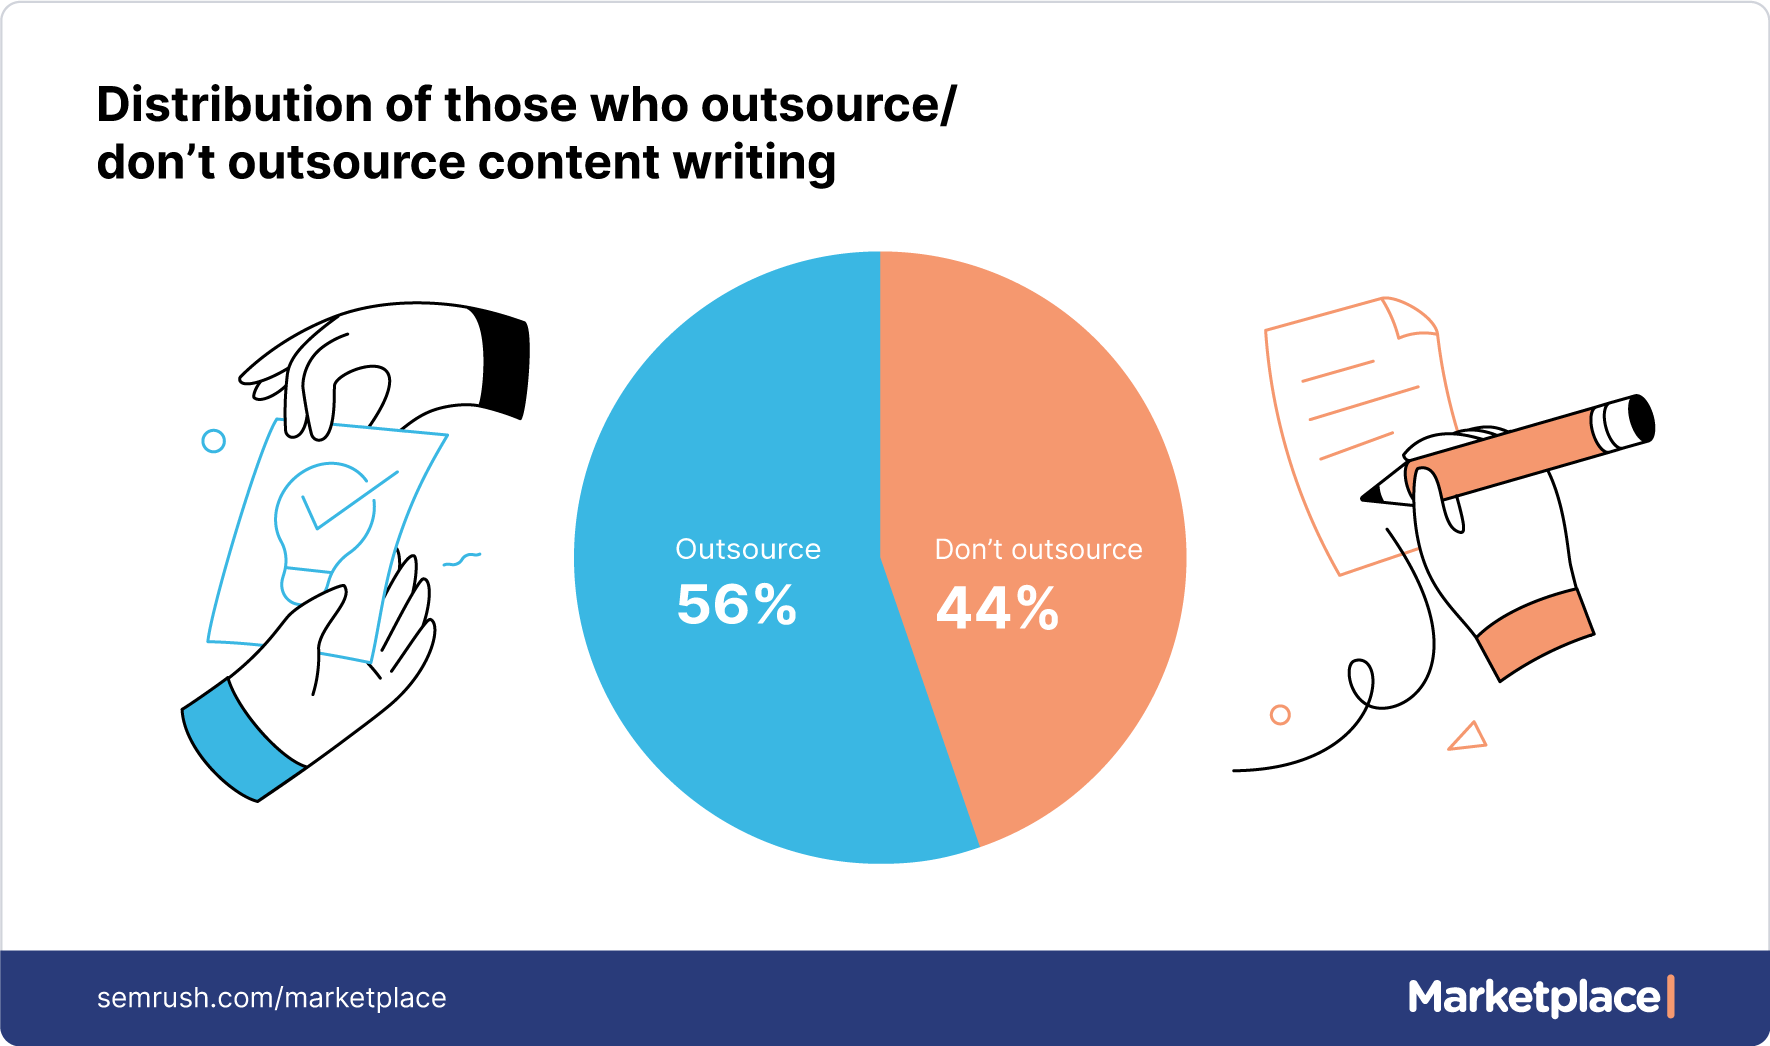 distribution of those who outsource/don't outsource content writing